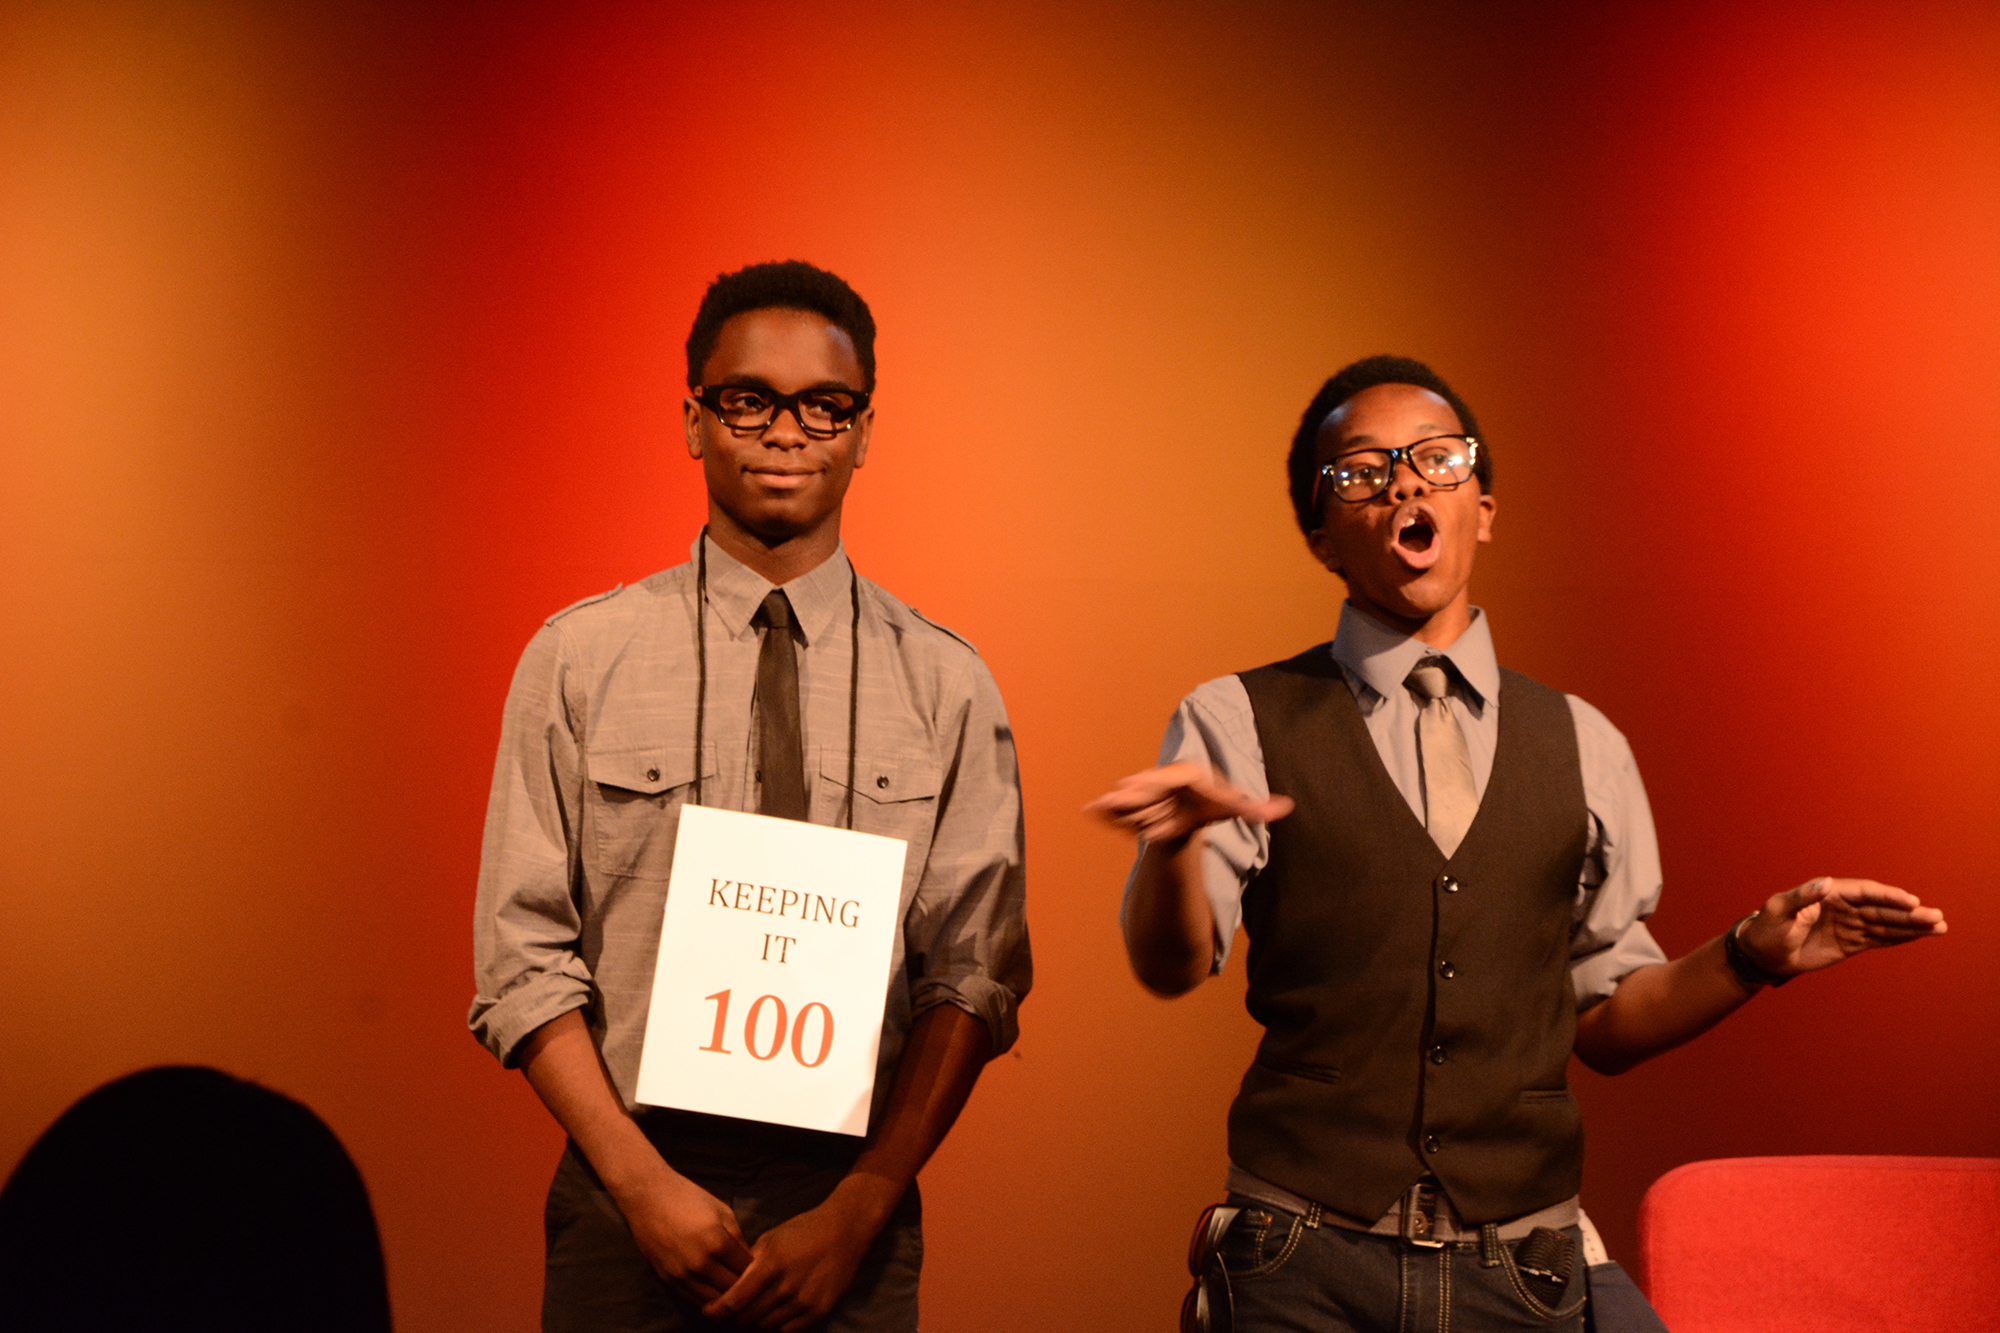 <p>&nbsp; Over 60 years after Brown v. Board of Education, New York City is one of the most segregated school districts in the United States. Conceived, written, and performed by NYC Public High School students, LAUNDRY CITY is a hilarious and provocative exploration of what &#8220;Separate but Equal&#8221; means to [&hellip;]</p>